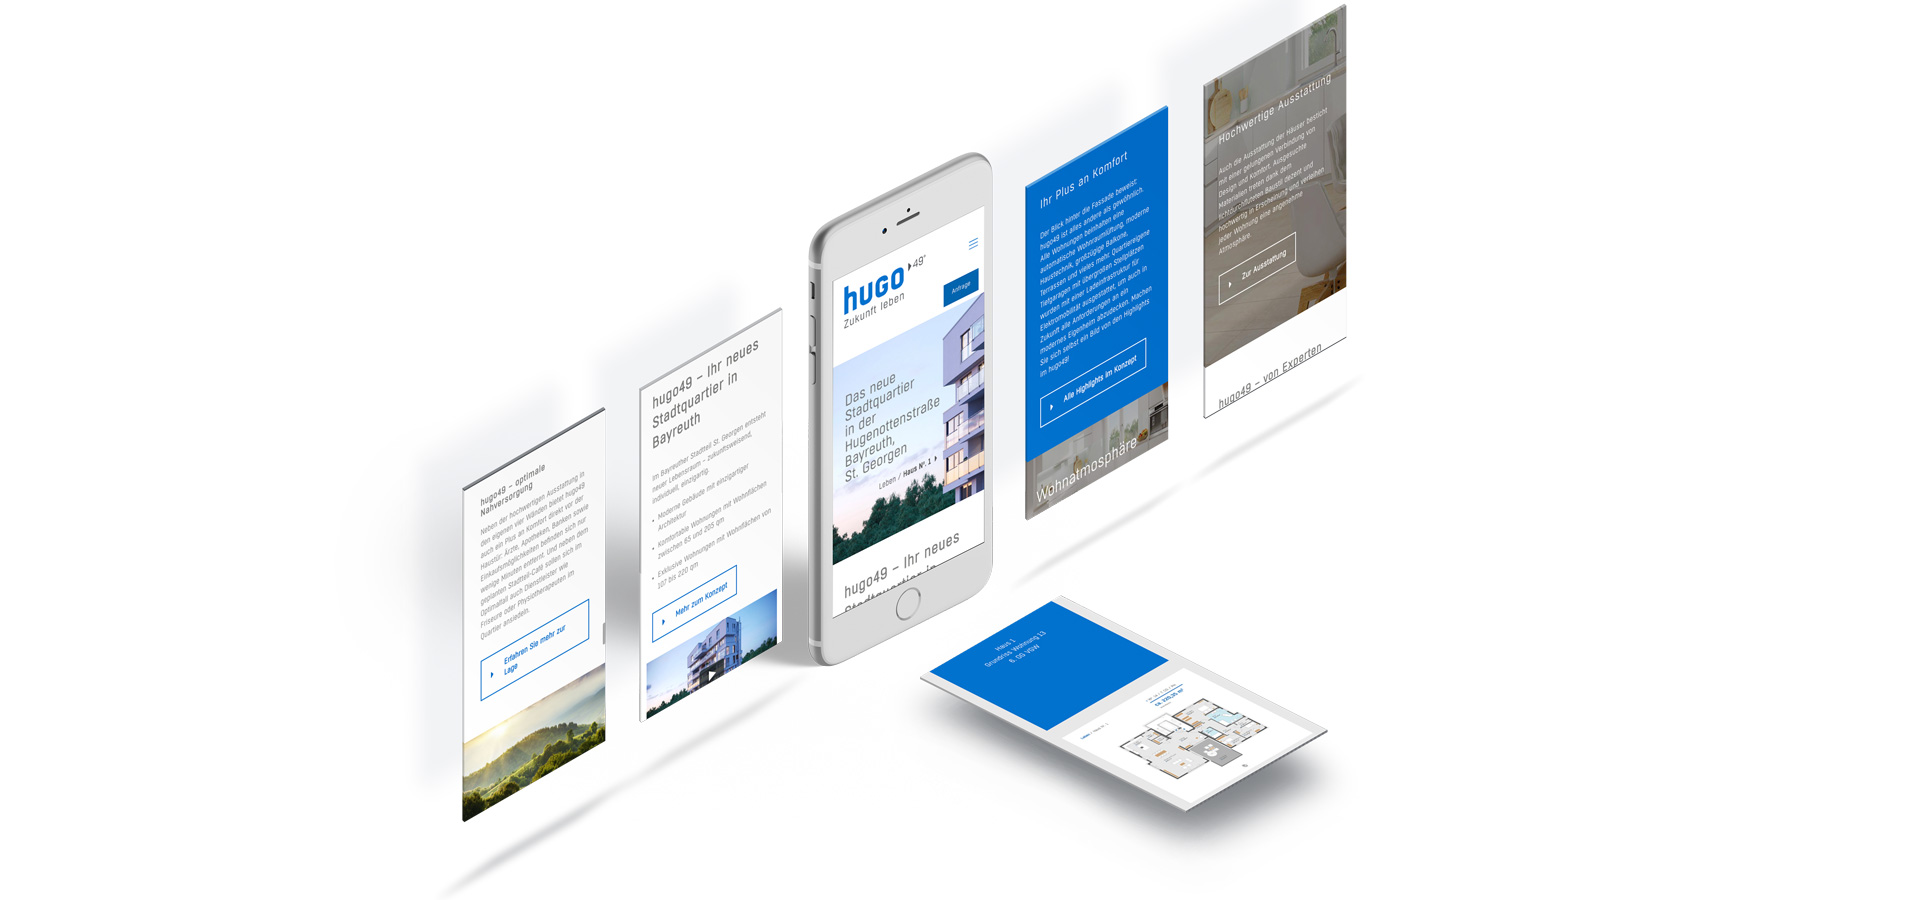 OPUS Marketing / Immobilienmarketing / hugo49 Bayreuth / Responsive Website